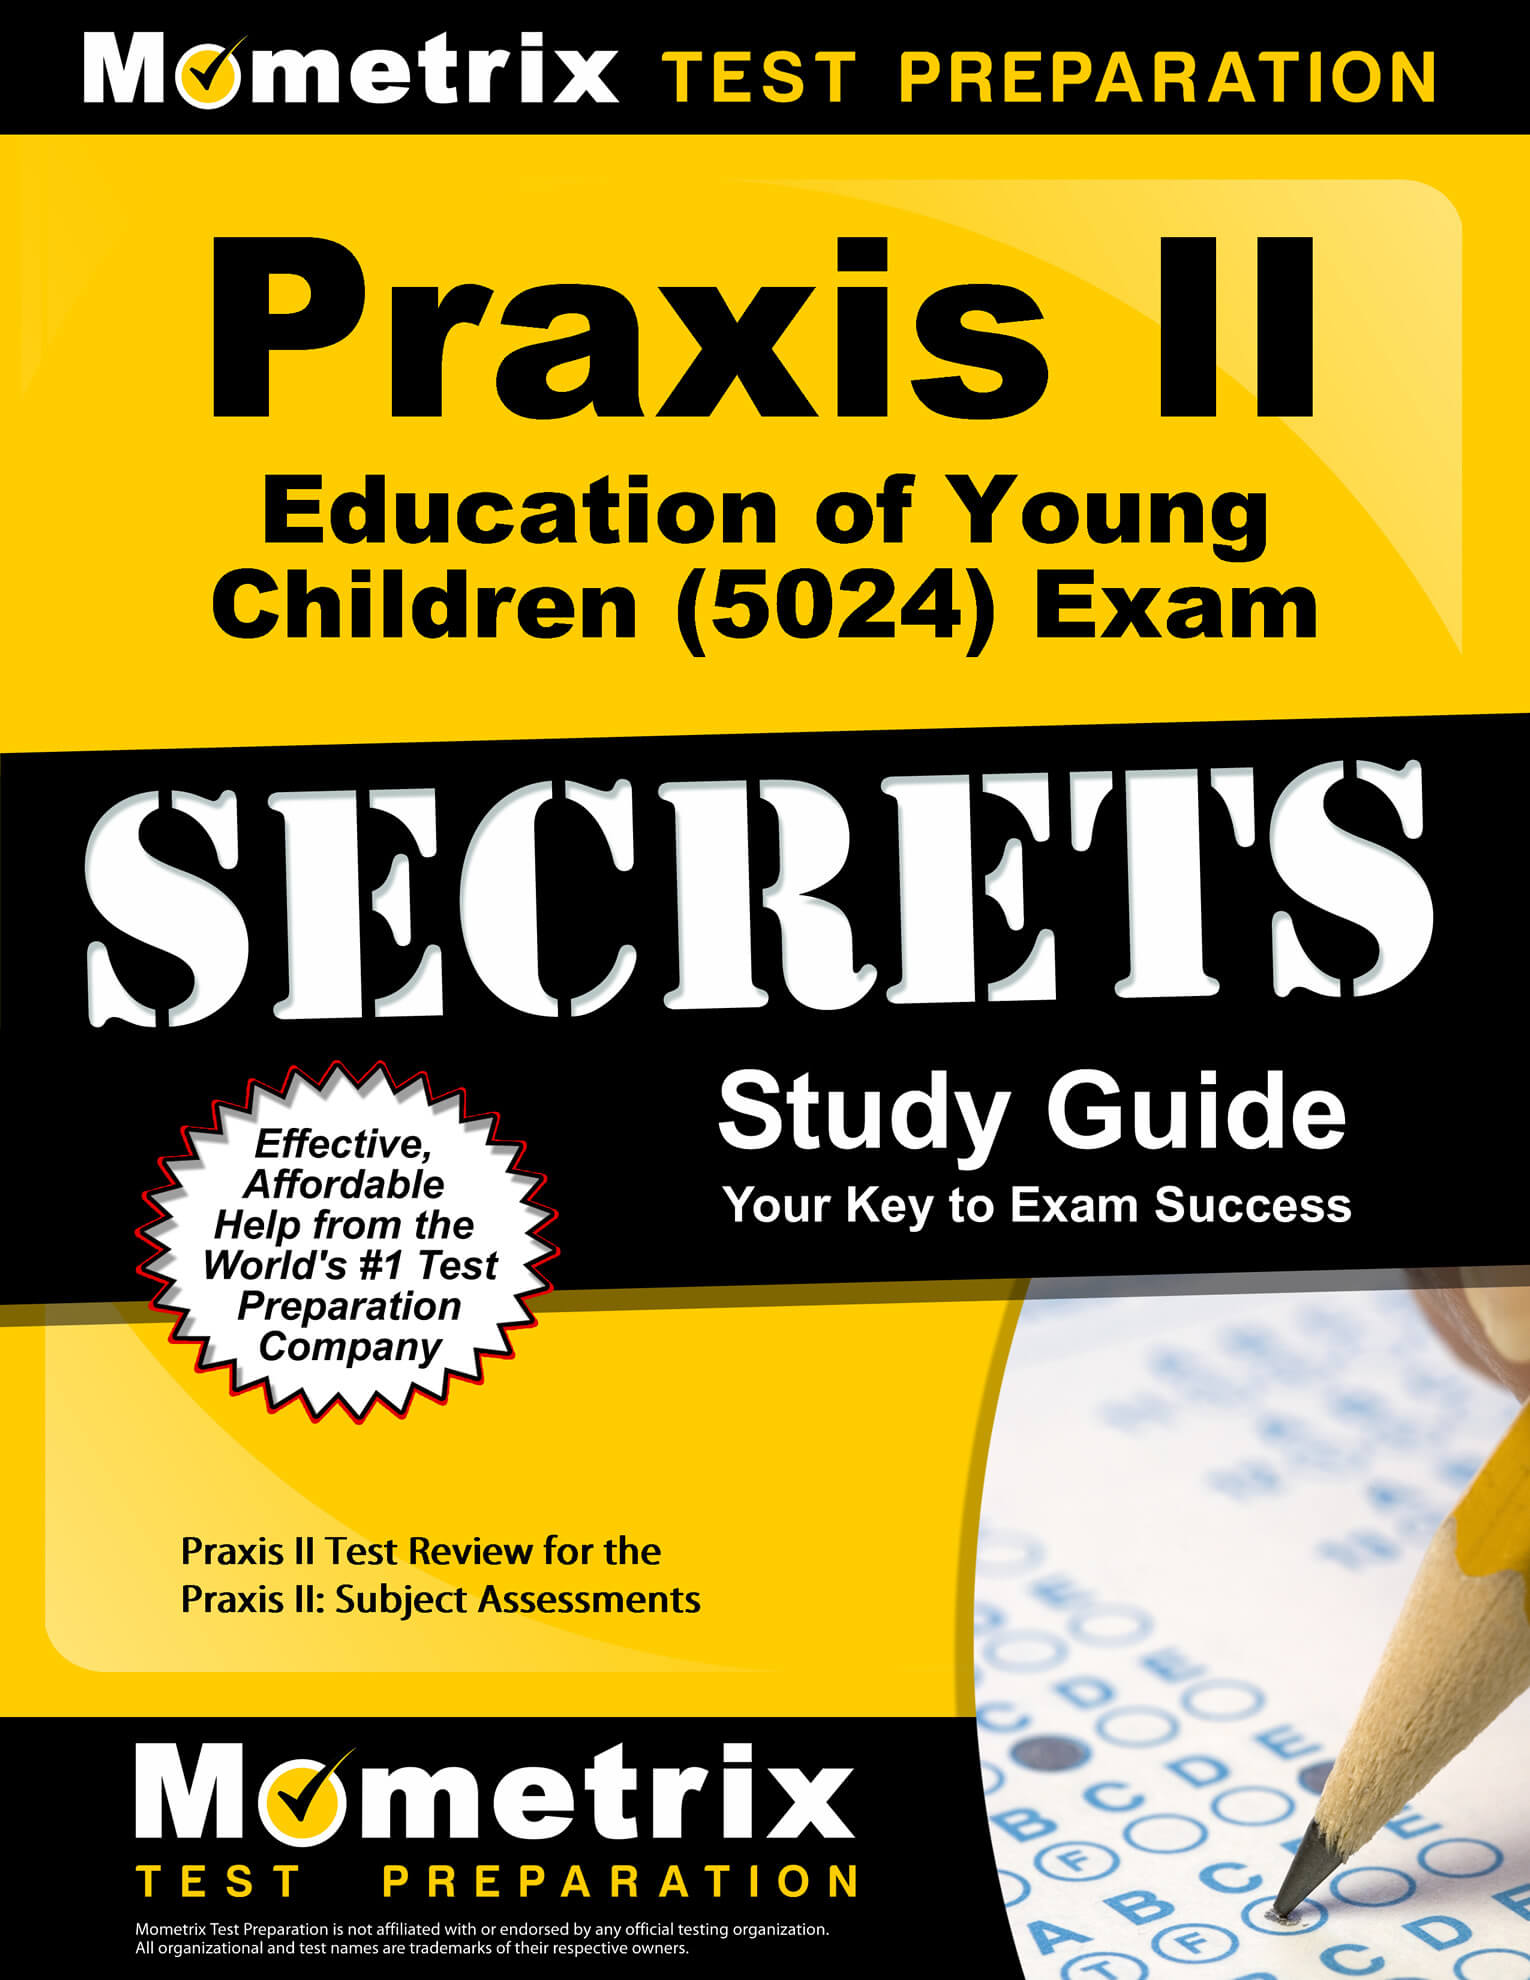 Praxis Education of Young Children Study Guide